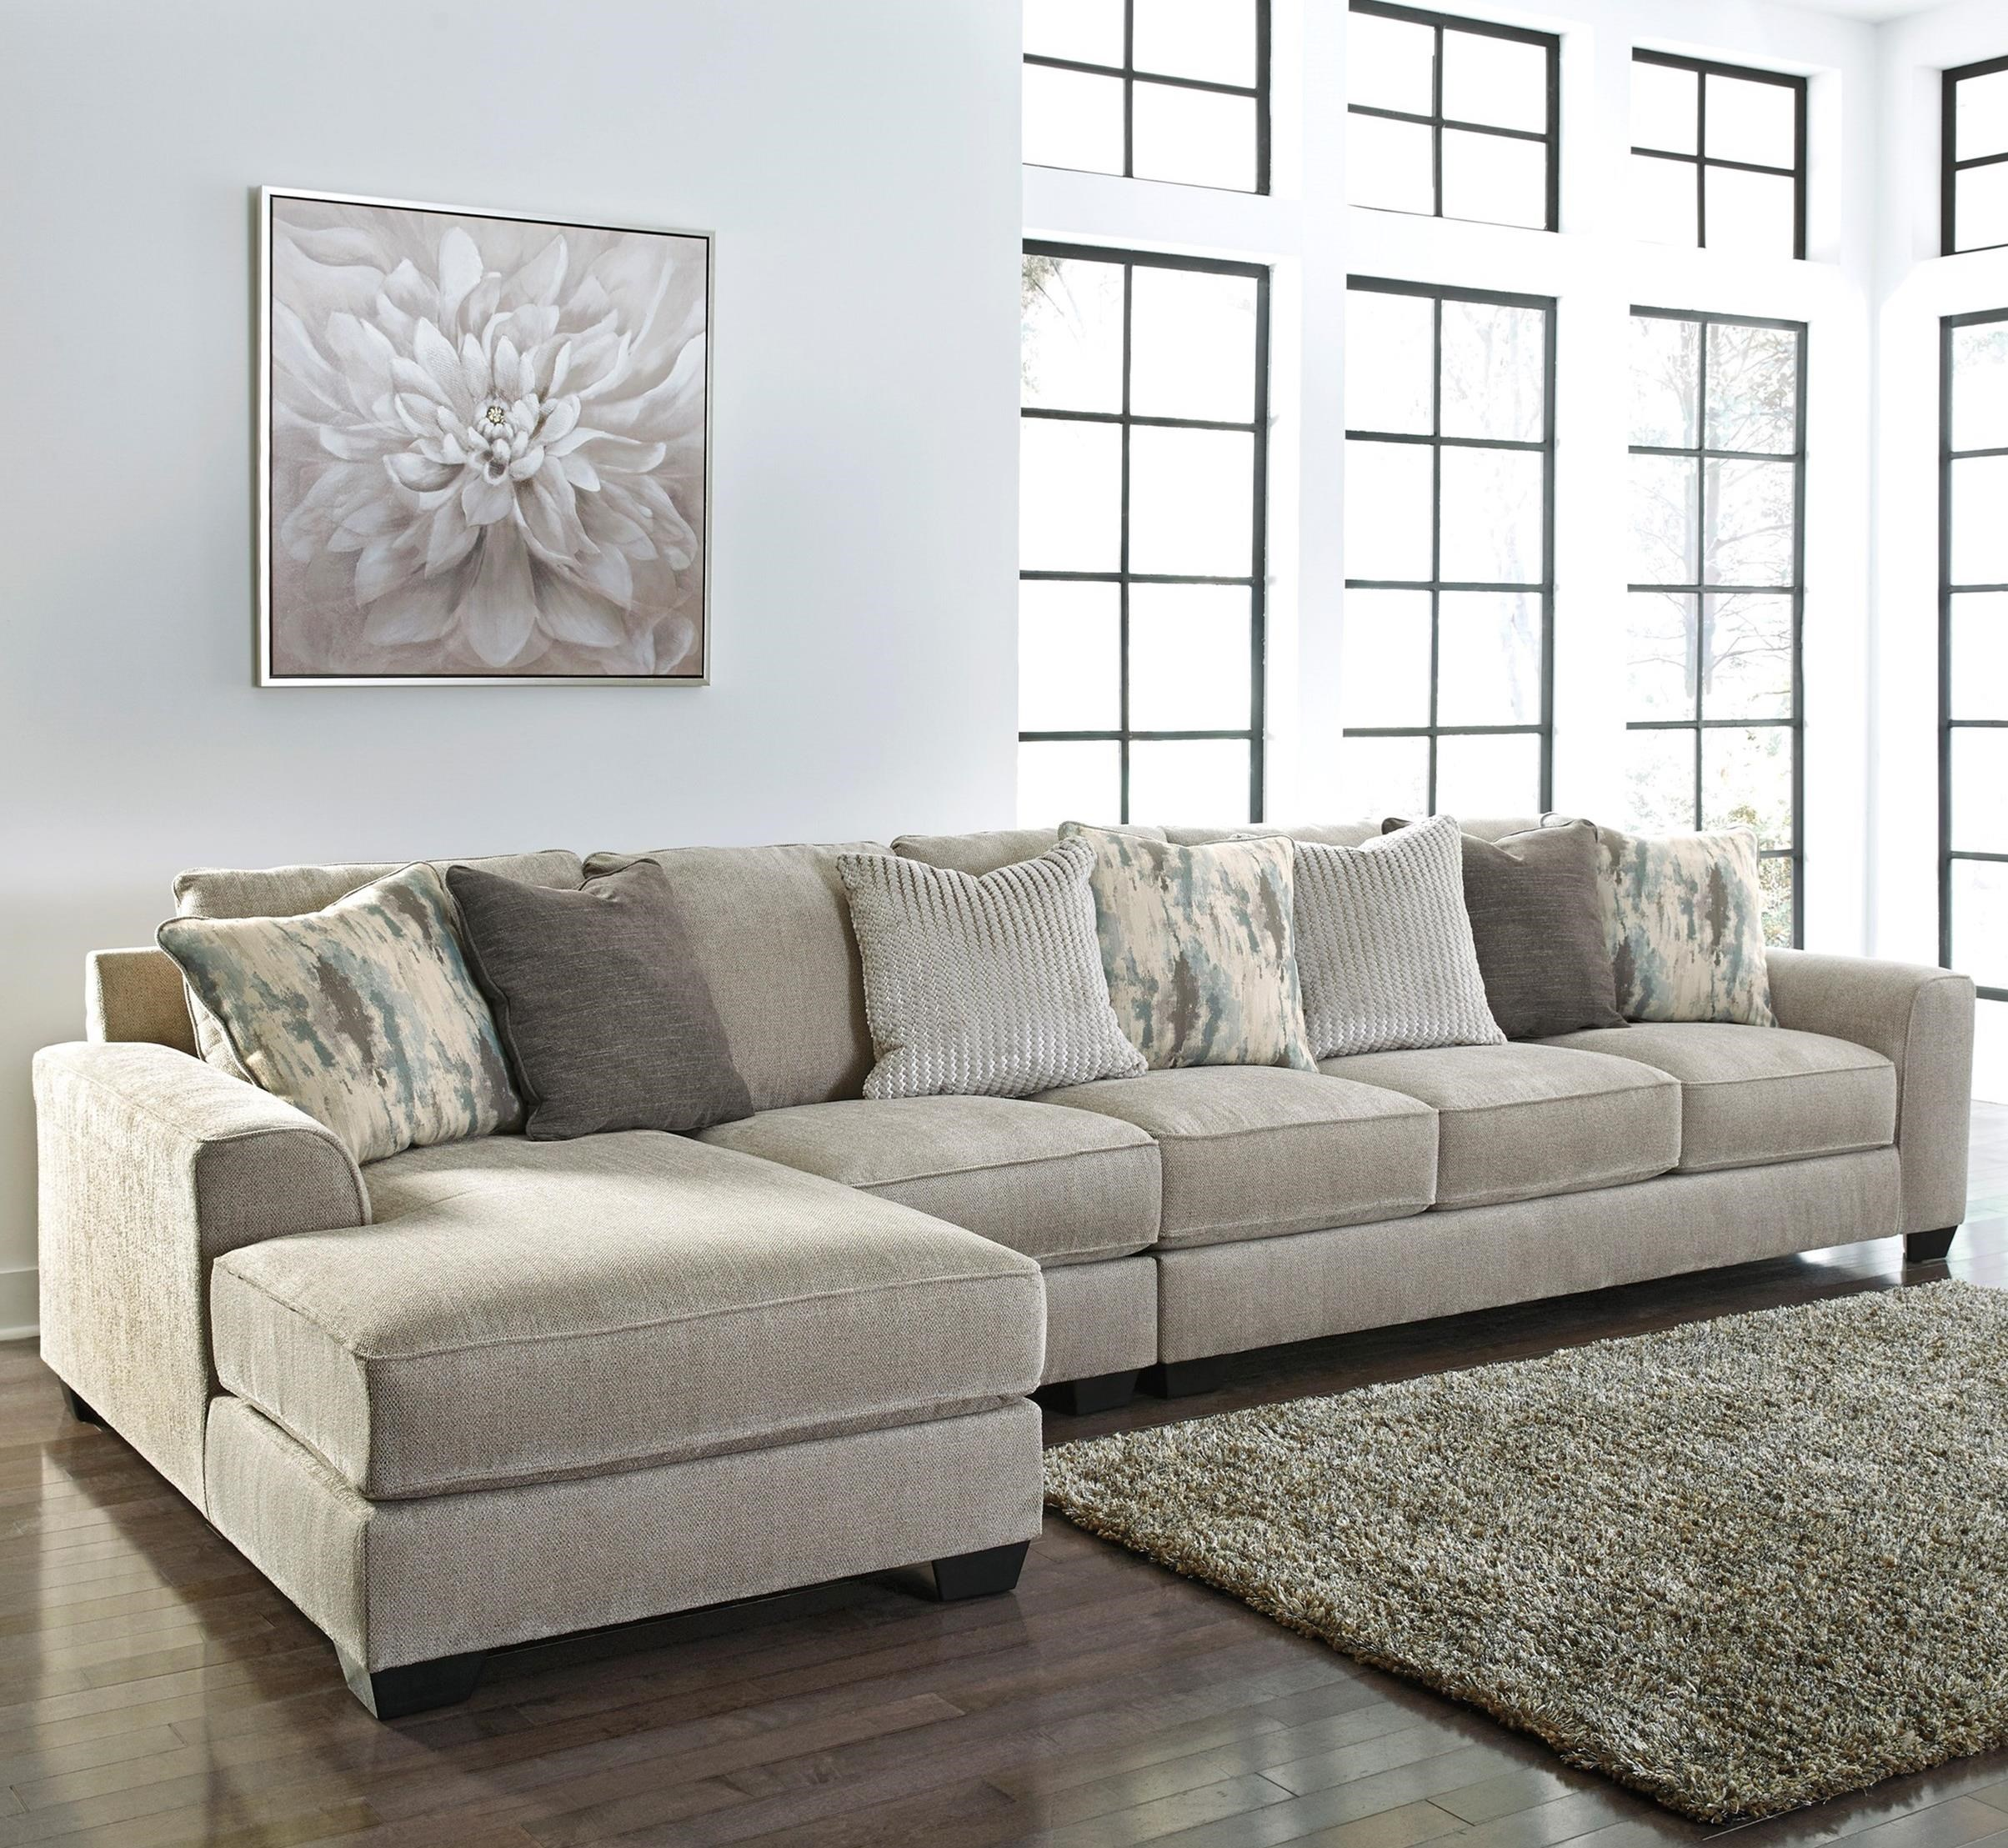 Ardsley 3-Piece Sectional with Left Chaise by Benchcraft at Northeast Factory Direct